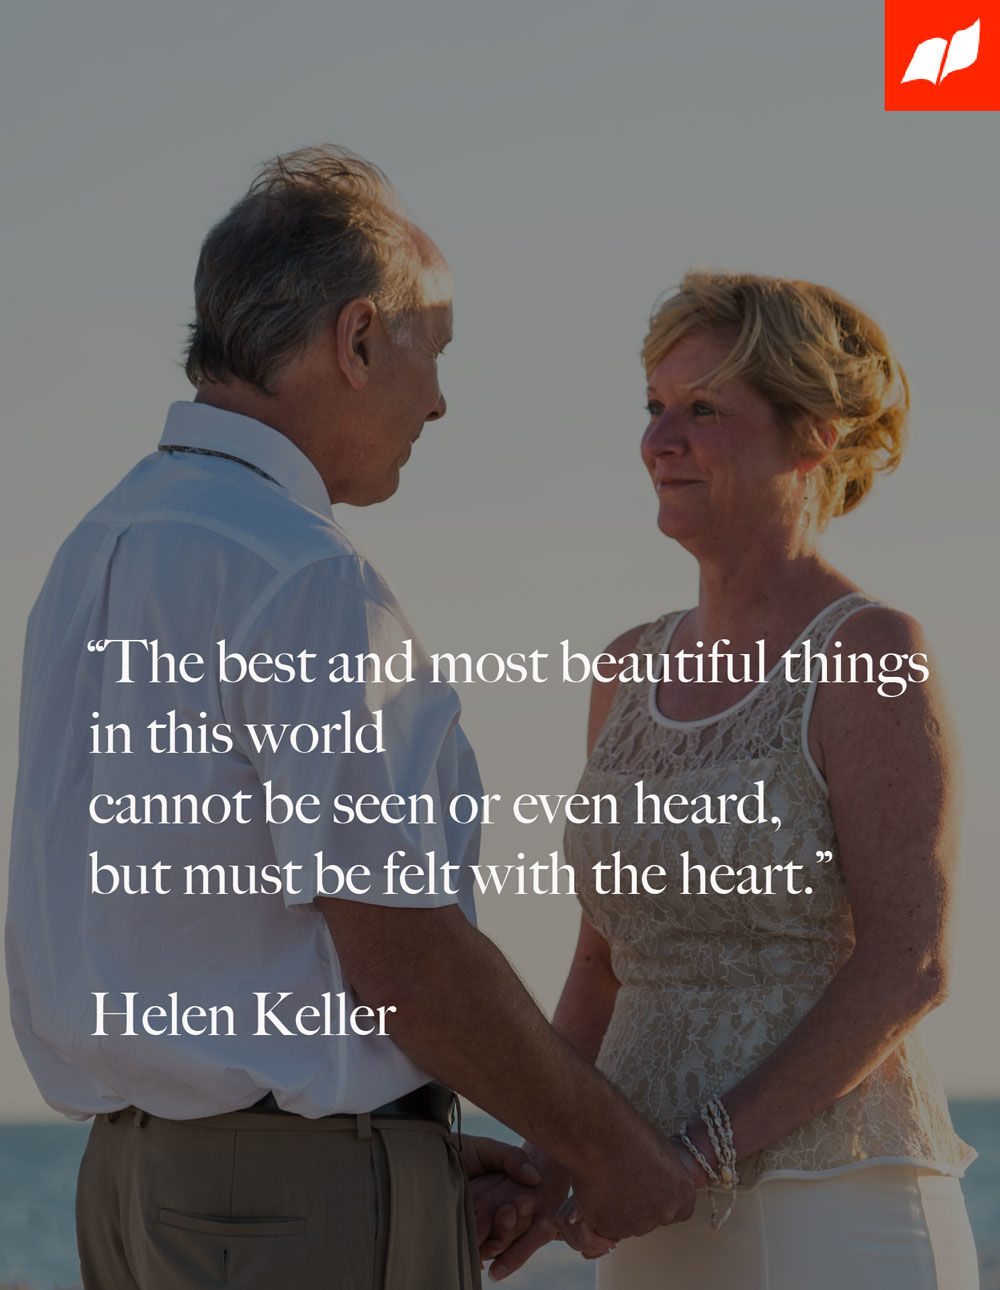 The best and most beautiful things in the world cannot be seen or even heard – but must be felt with the heart.